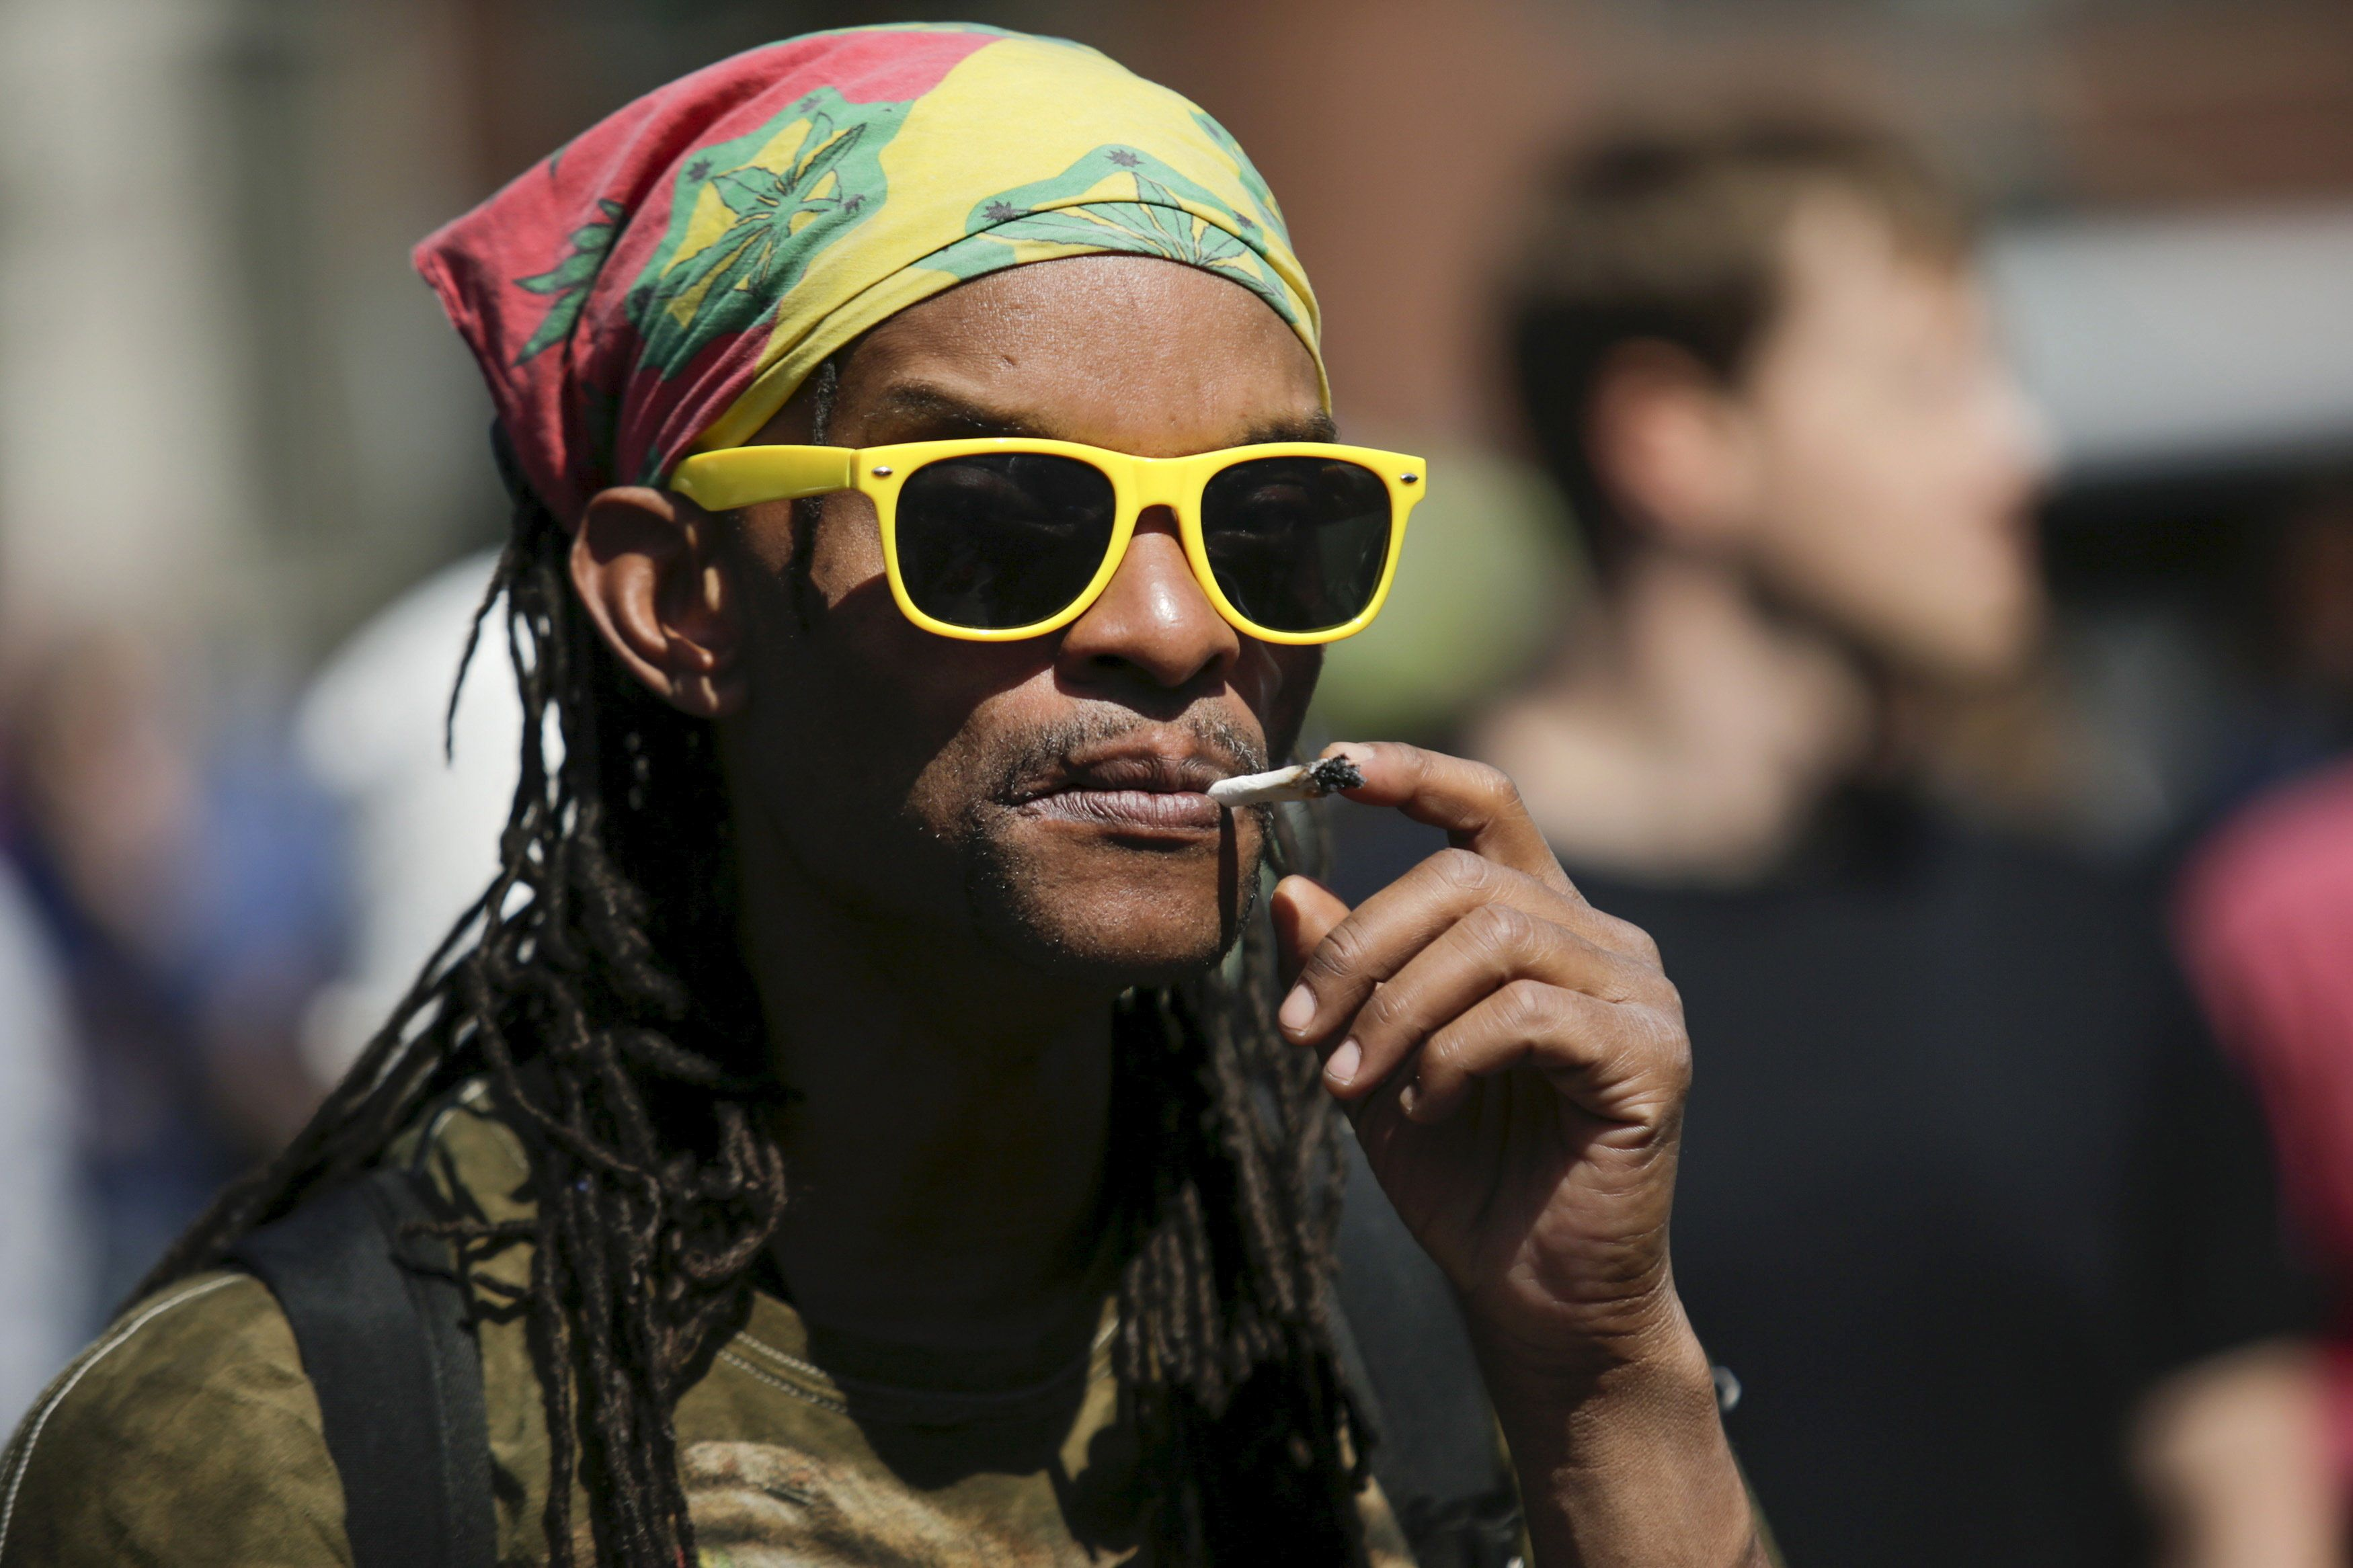 A man smokes a joint while people take part in a rally calling for marijuana to be legalized at Union Square in New York May 2, 2015. REUTERS/Eduardo Munoz